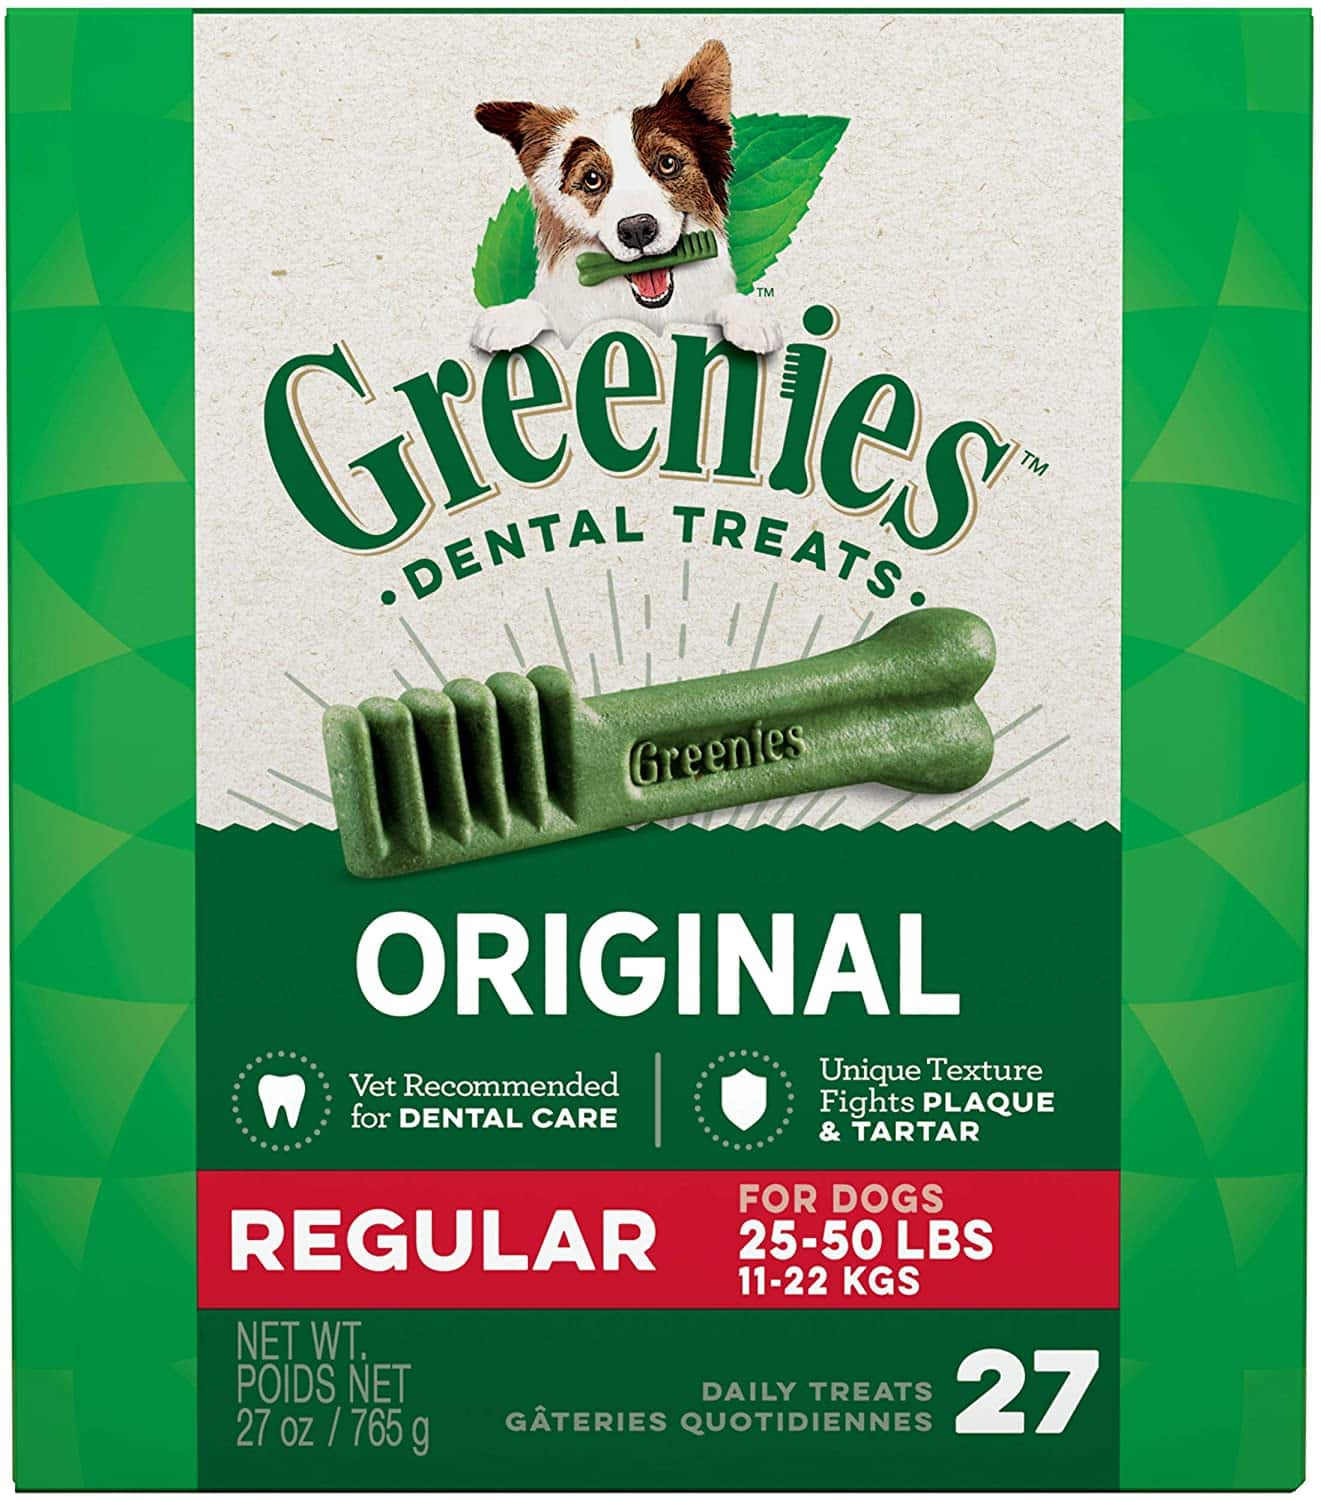 27oz Greenies Original Natural Dental Dog Treats (Teenie, Petite, Regular) for $16.58 w/ Subscribe & Save